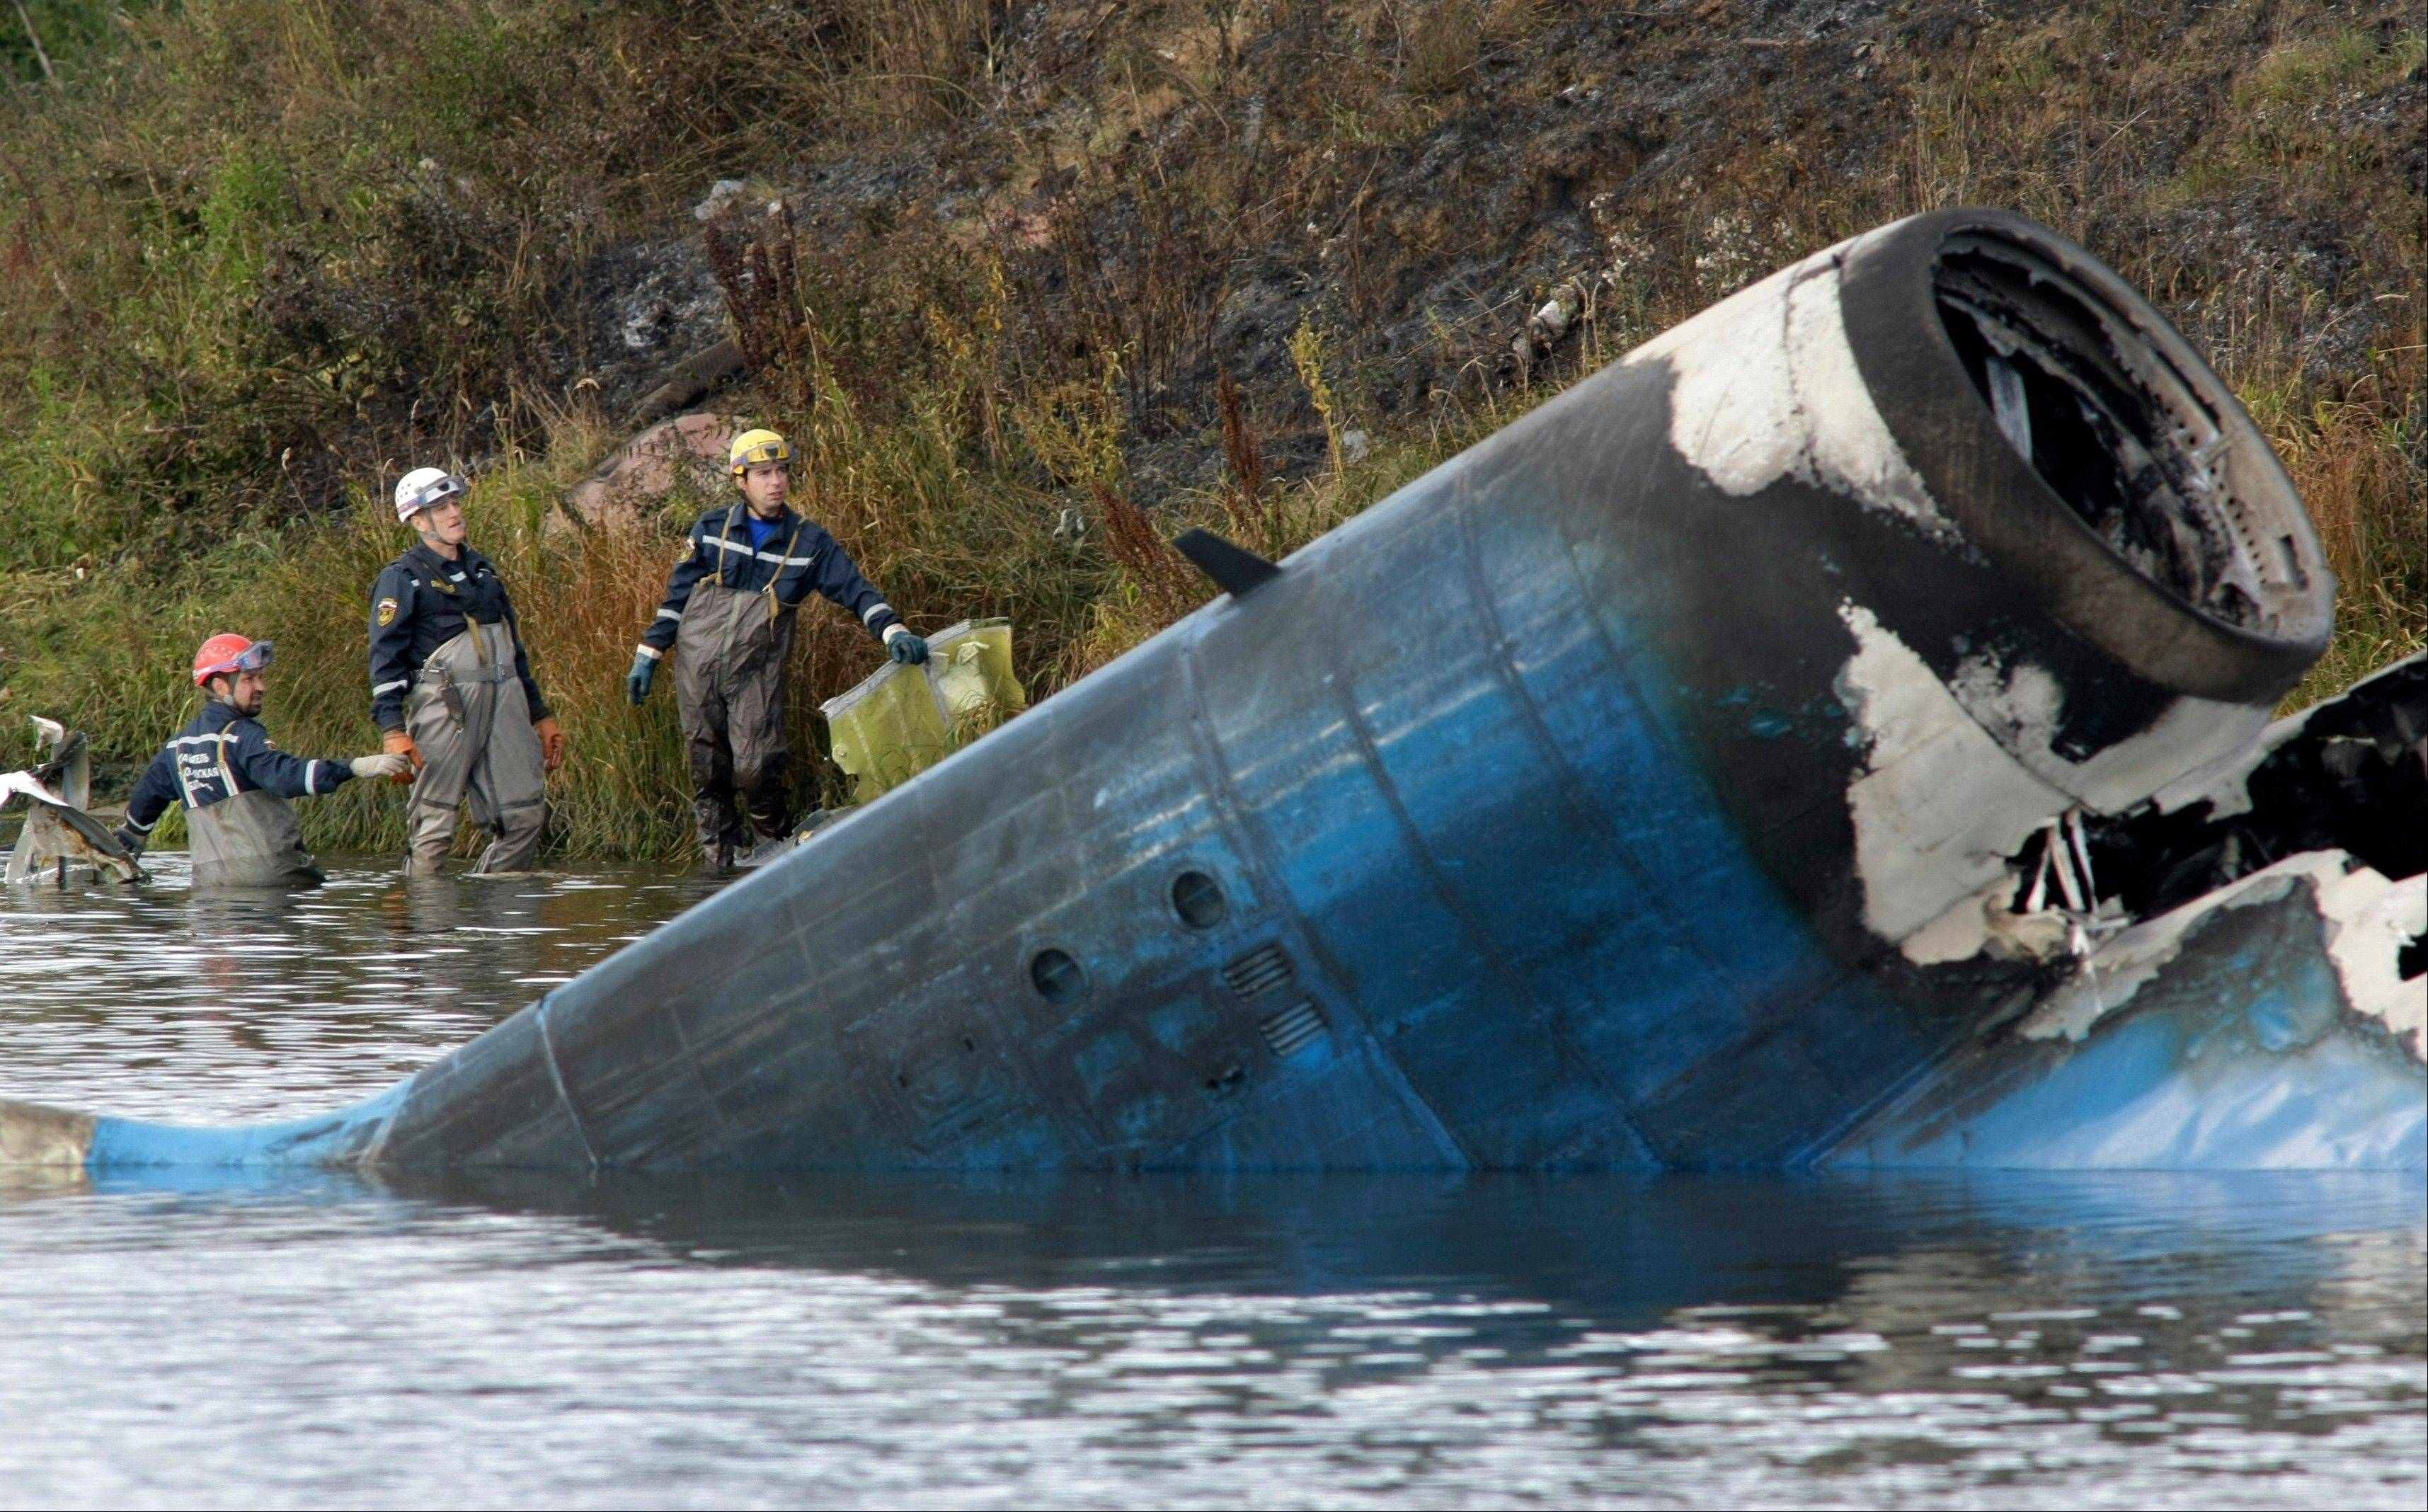 Rescuers work at the crash site of a Russian Yak-42 jet near the city of Yaroslavl, on the Volga River about 150 miles northeast of Moscow, Russia. The Yak-42 jet was carrying the Lokomotiv ice hockey team. At least 43 are dead, with 2 others critically injured.